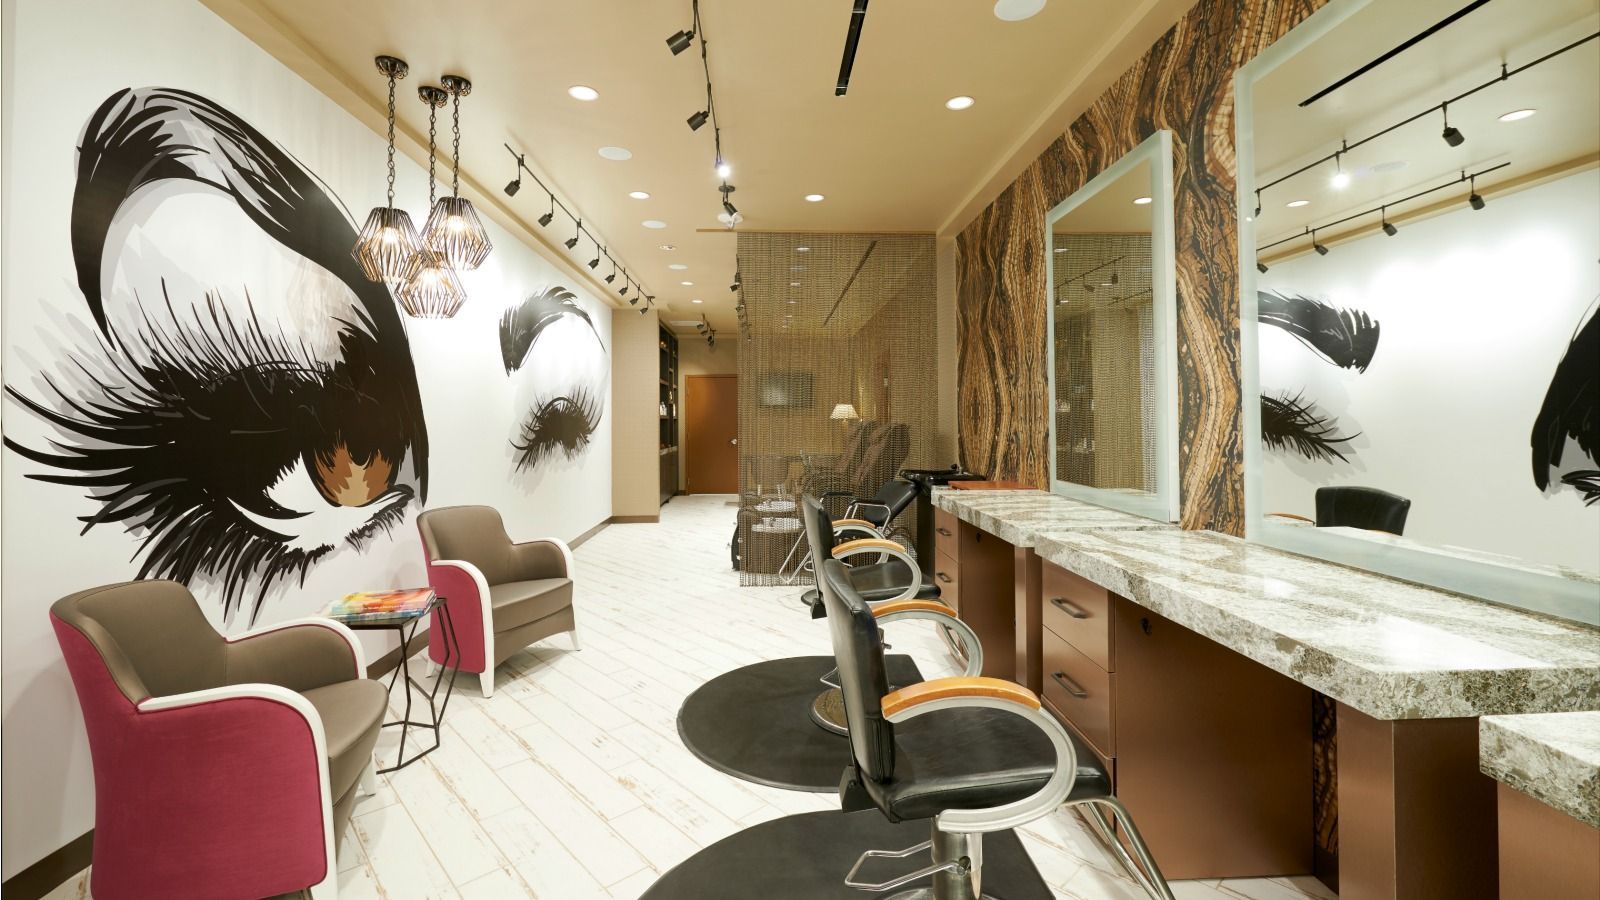 Las Vegas Spa - Hibiscus Salon